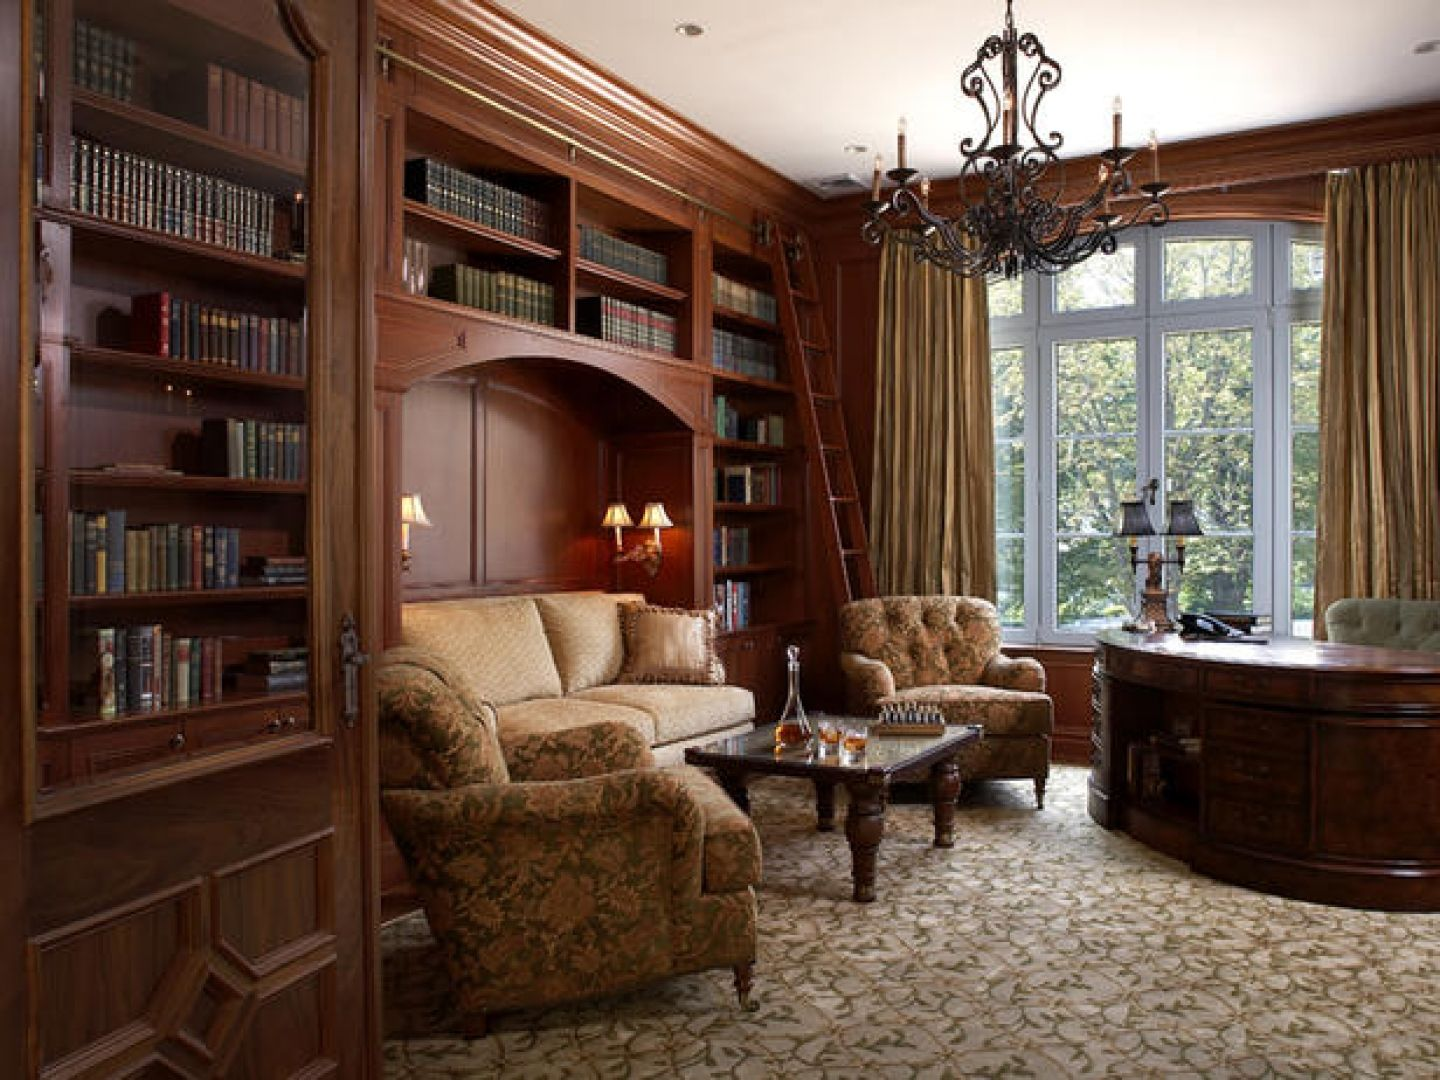 Genial Home Office Traditional Home Office Decorating Ideas Mudroom Kitchen  Victorian Medium Backyard Courts Kitchen Septic